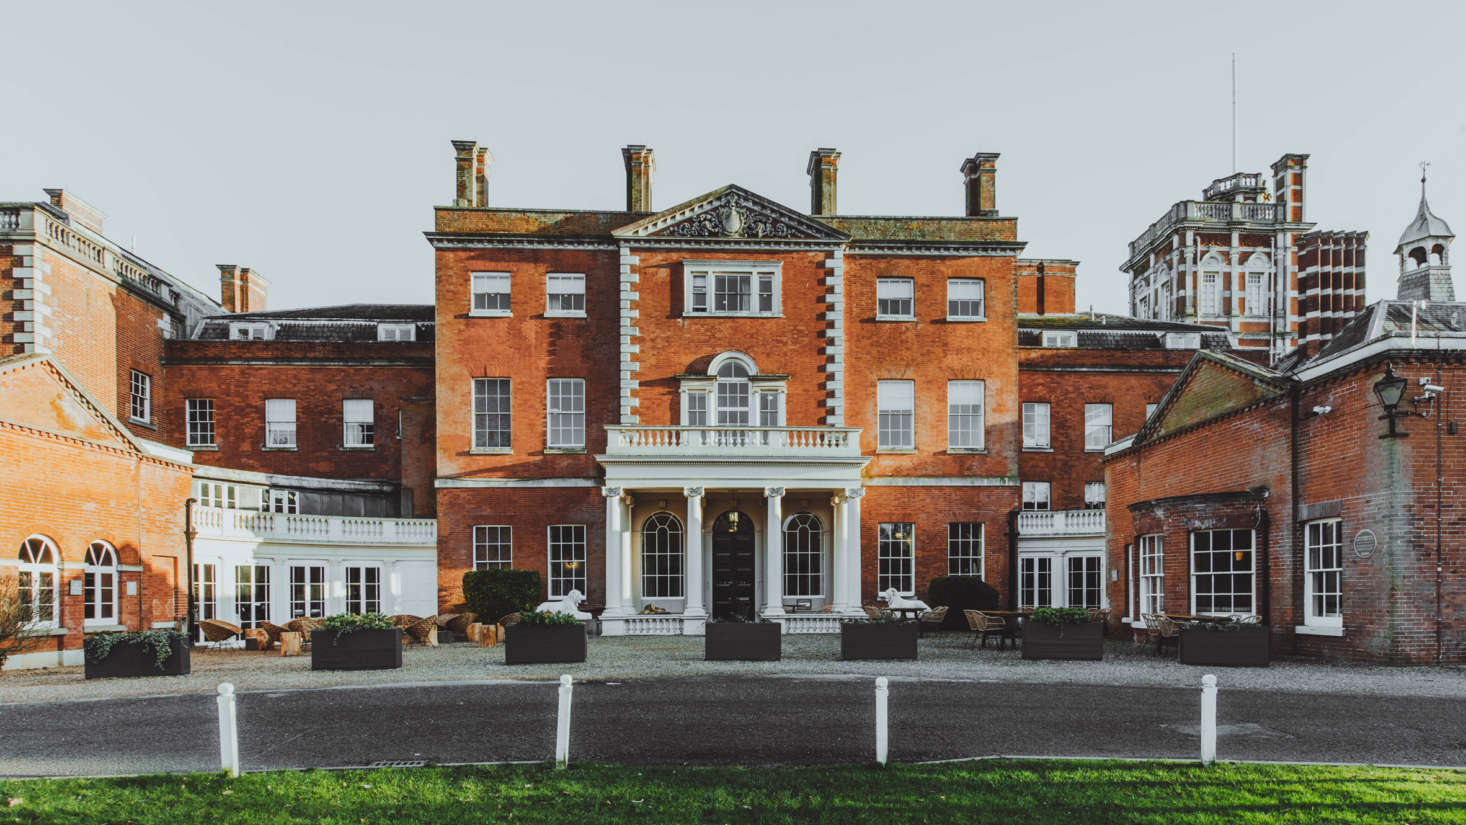 The Birch is located in a 63 brick Georgian house in the town of Cheshunt, near Hertfordshire, England, on a 55-acre estate.